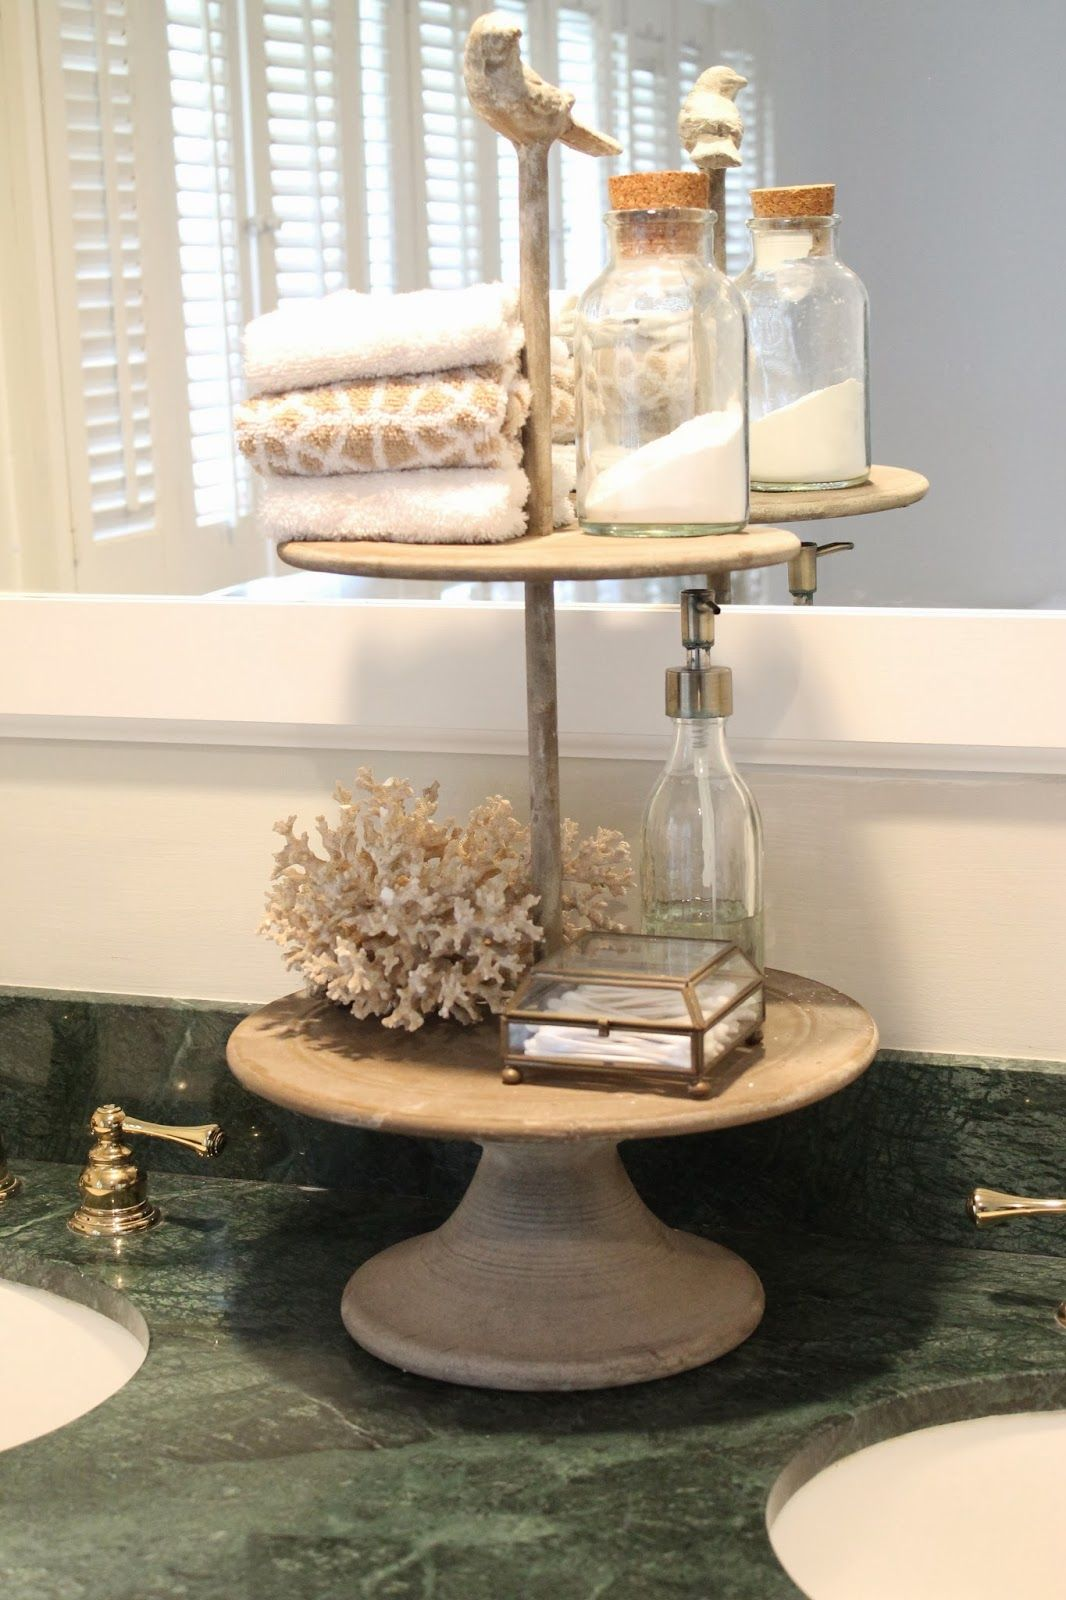 The Picket Fence Projects Counter Clutter Bathroom Vanity Tray Beautiful Bathroom Vanity Bathroom Counter Decor